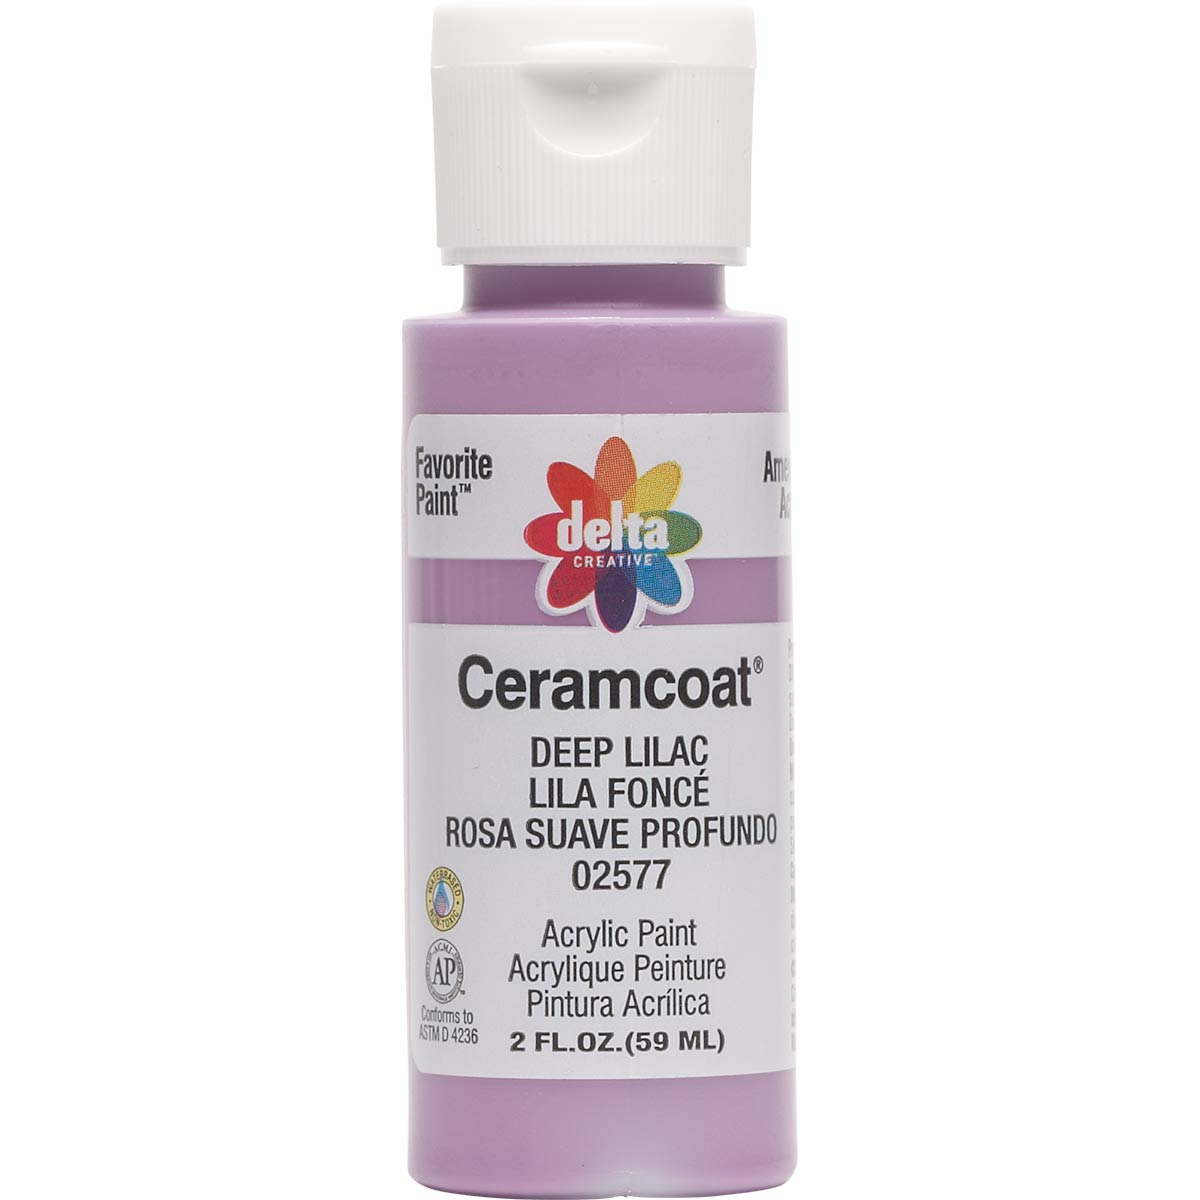 Delta Ceramcoat ® Acrylic Paint - Deep Lilac, 2 oz.